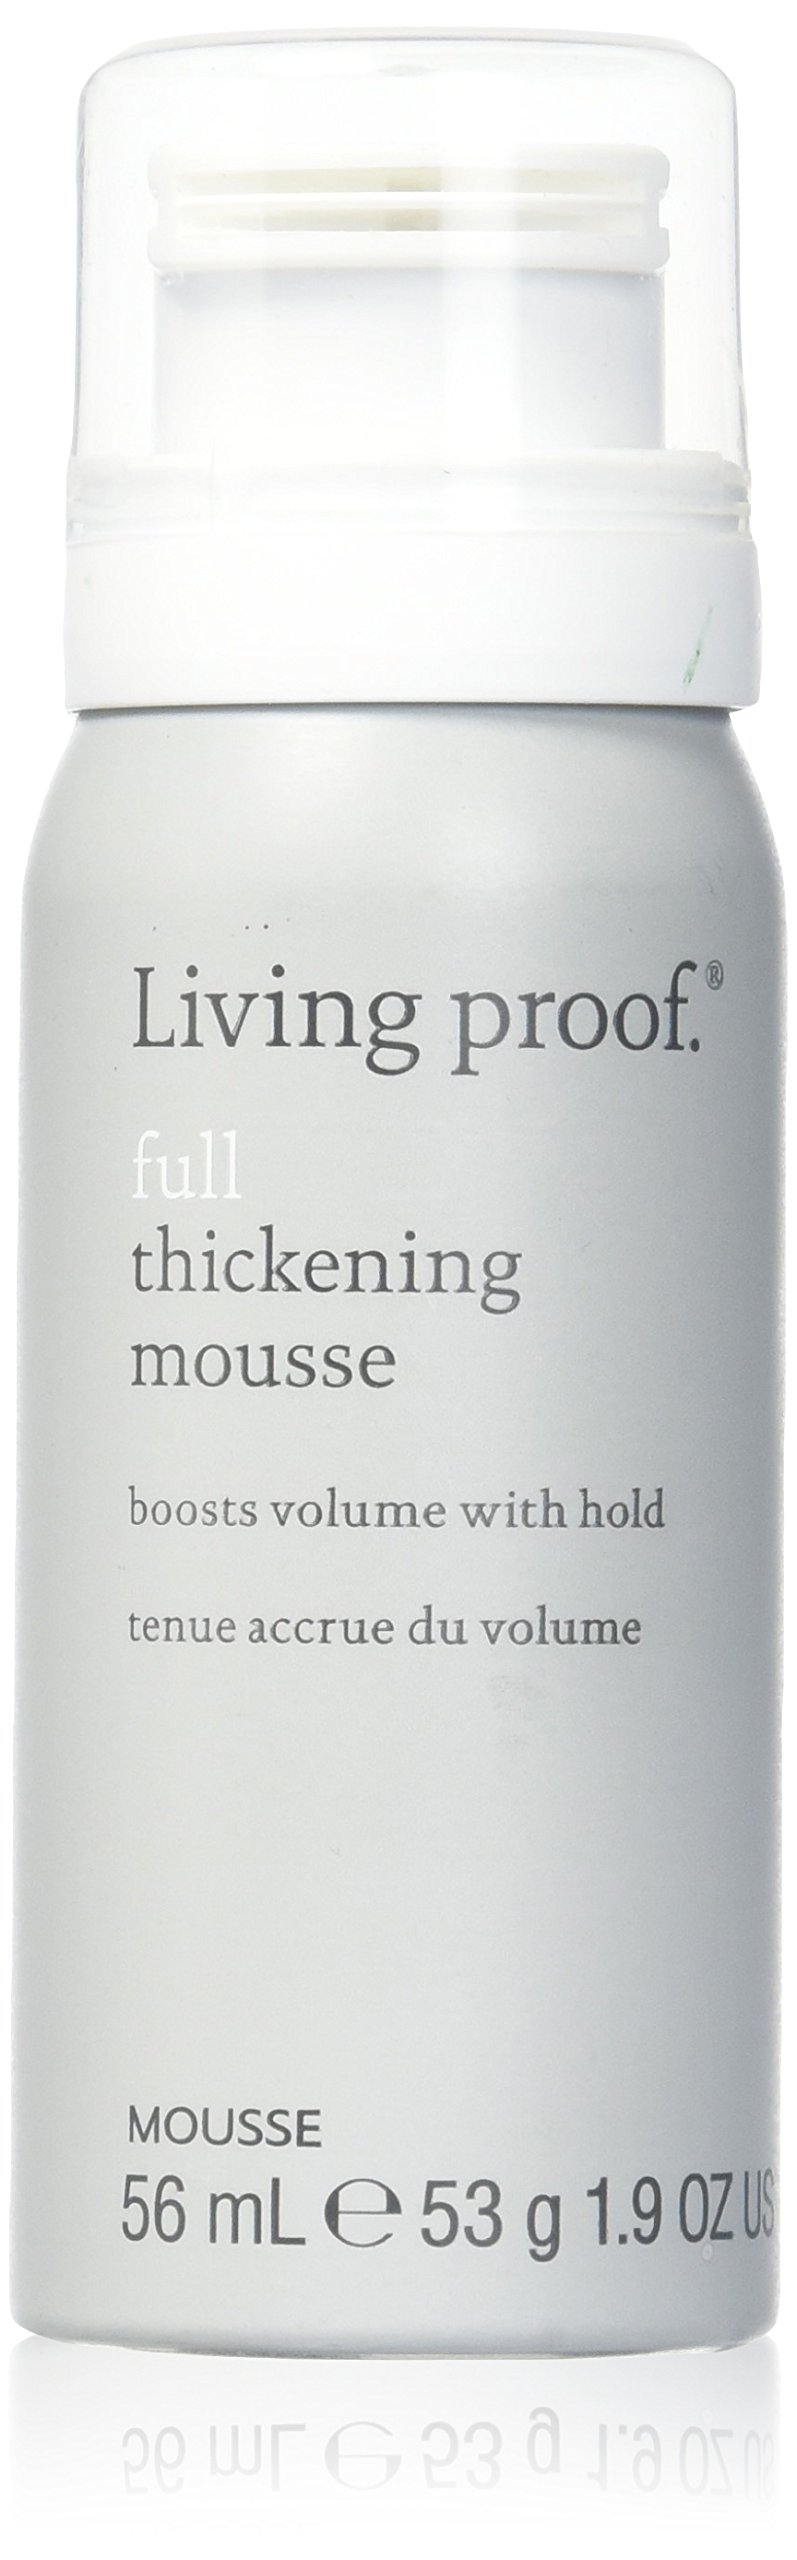 Living Proof Full Thickening Mousse, Travel